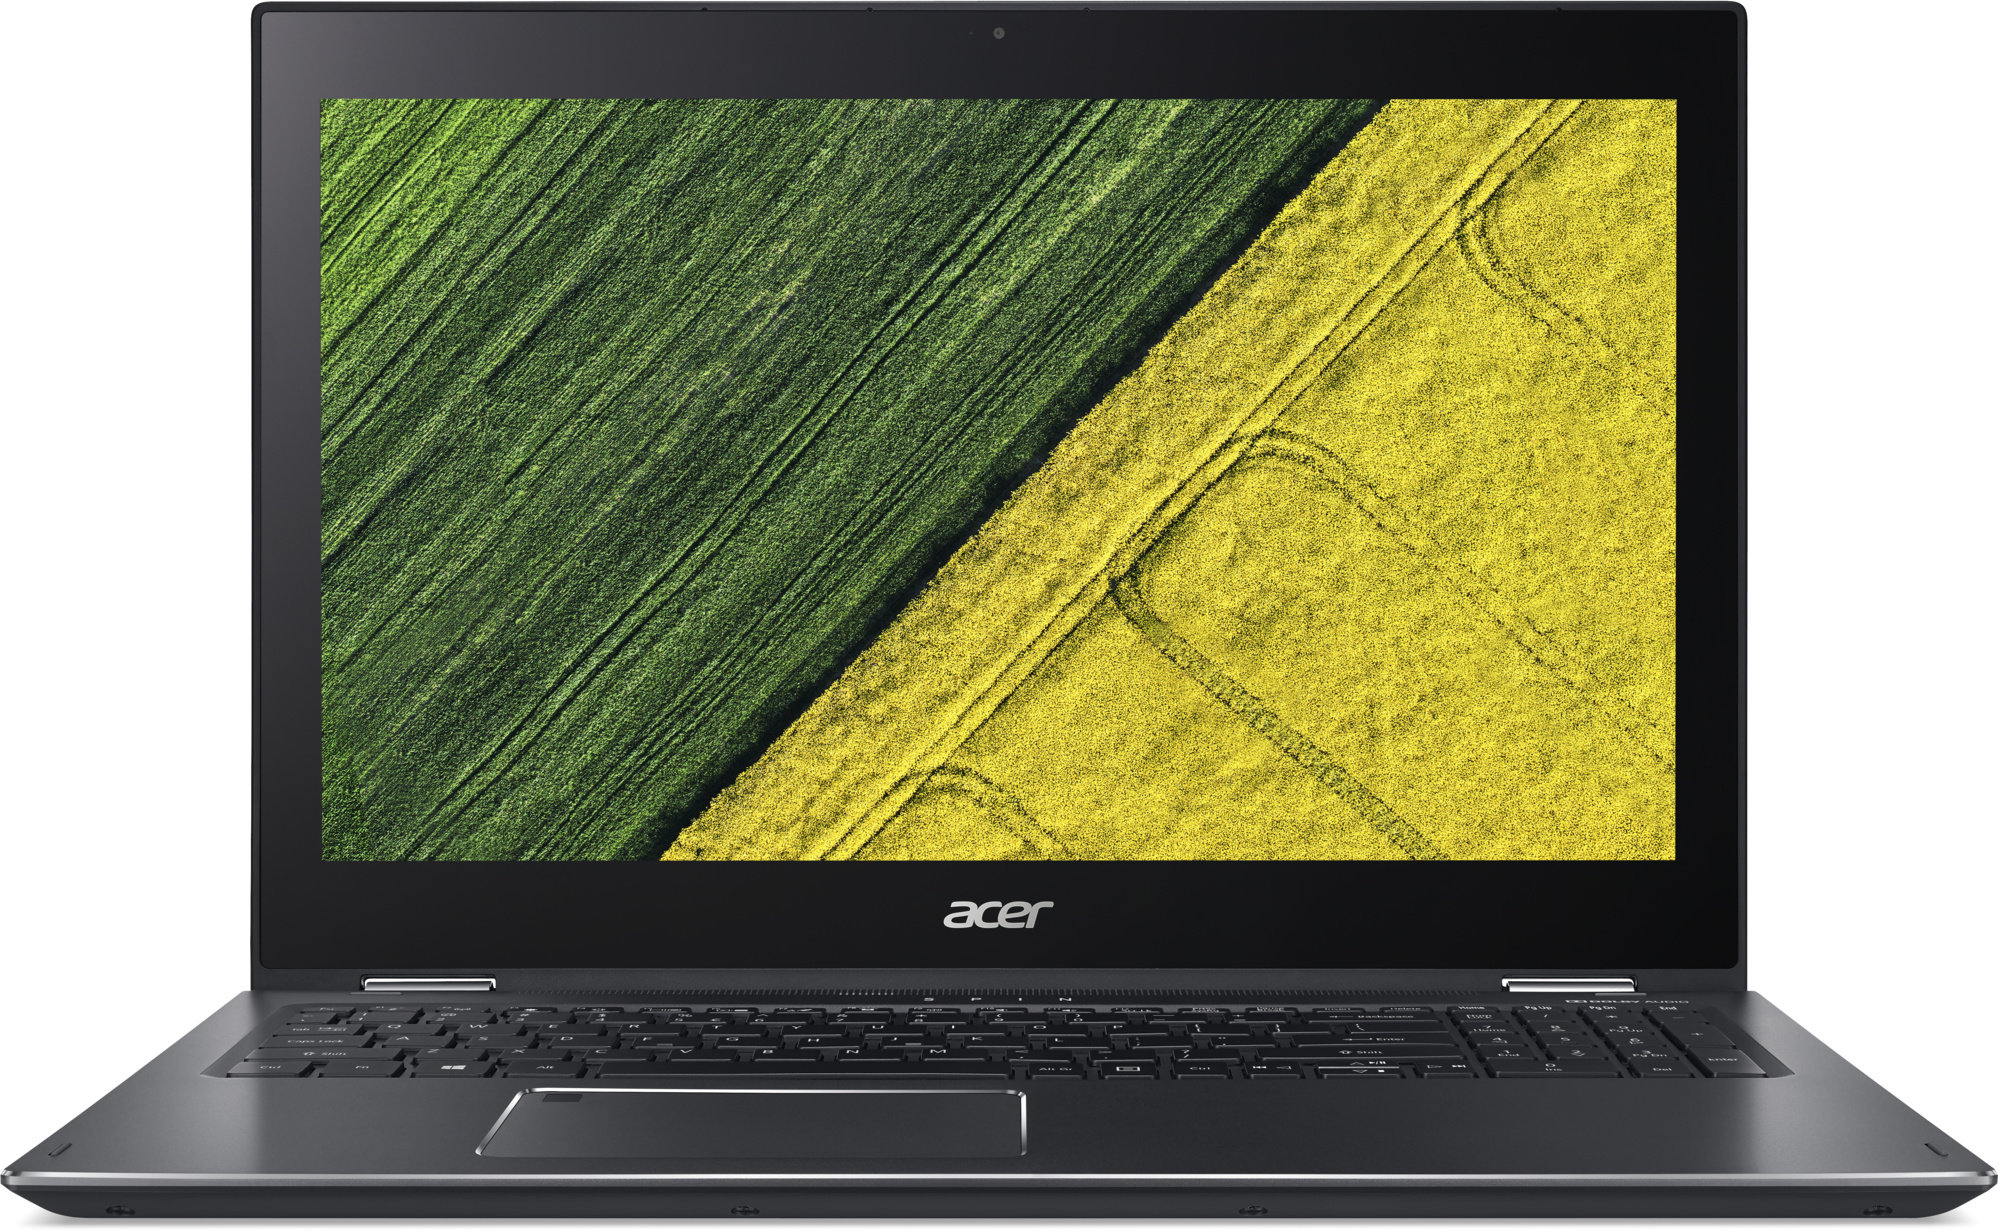 """Acer Spin 5 (SP515-51N-563G) i5-8250U/8GB+N/A/256GB Intel PCIe SSD+N/HD Graphics/15.6"""" FHD IPS Multi-Touch/BT/W10 Home/Gray"""